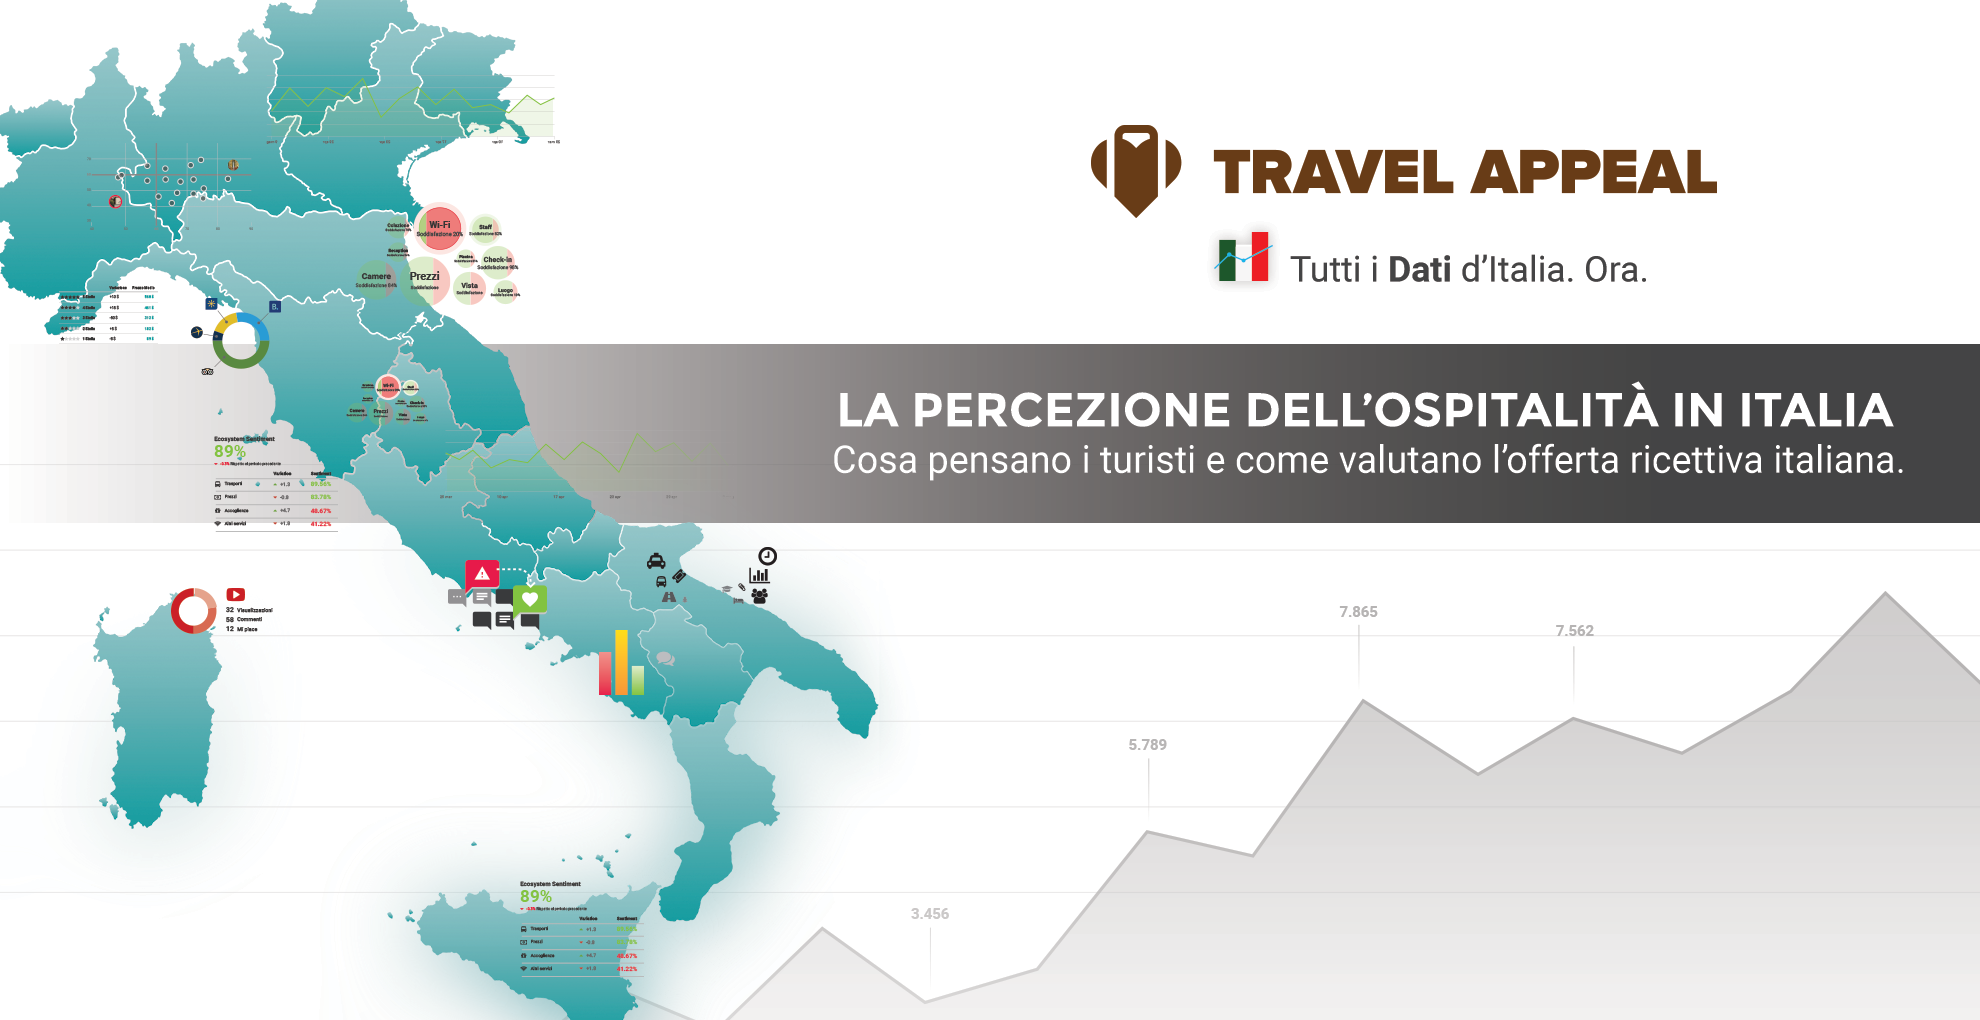 Travel Appeal Italia